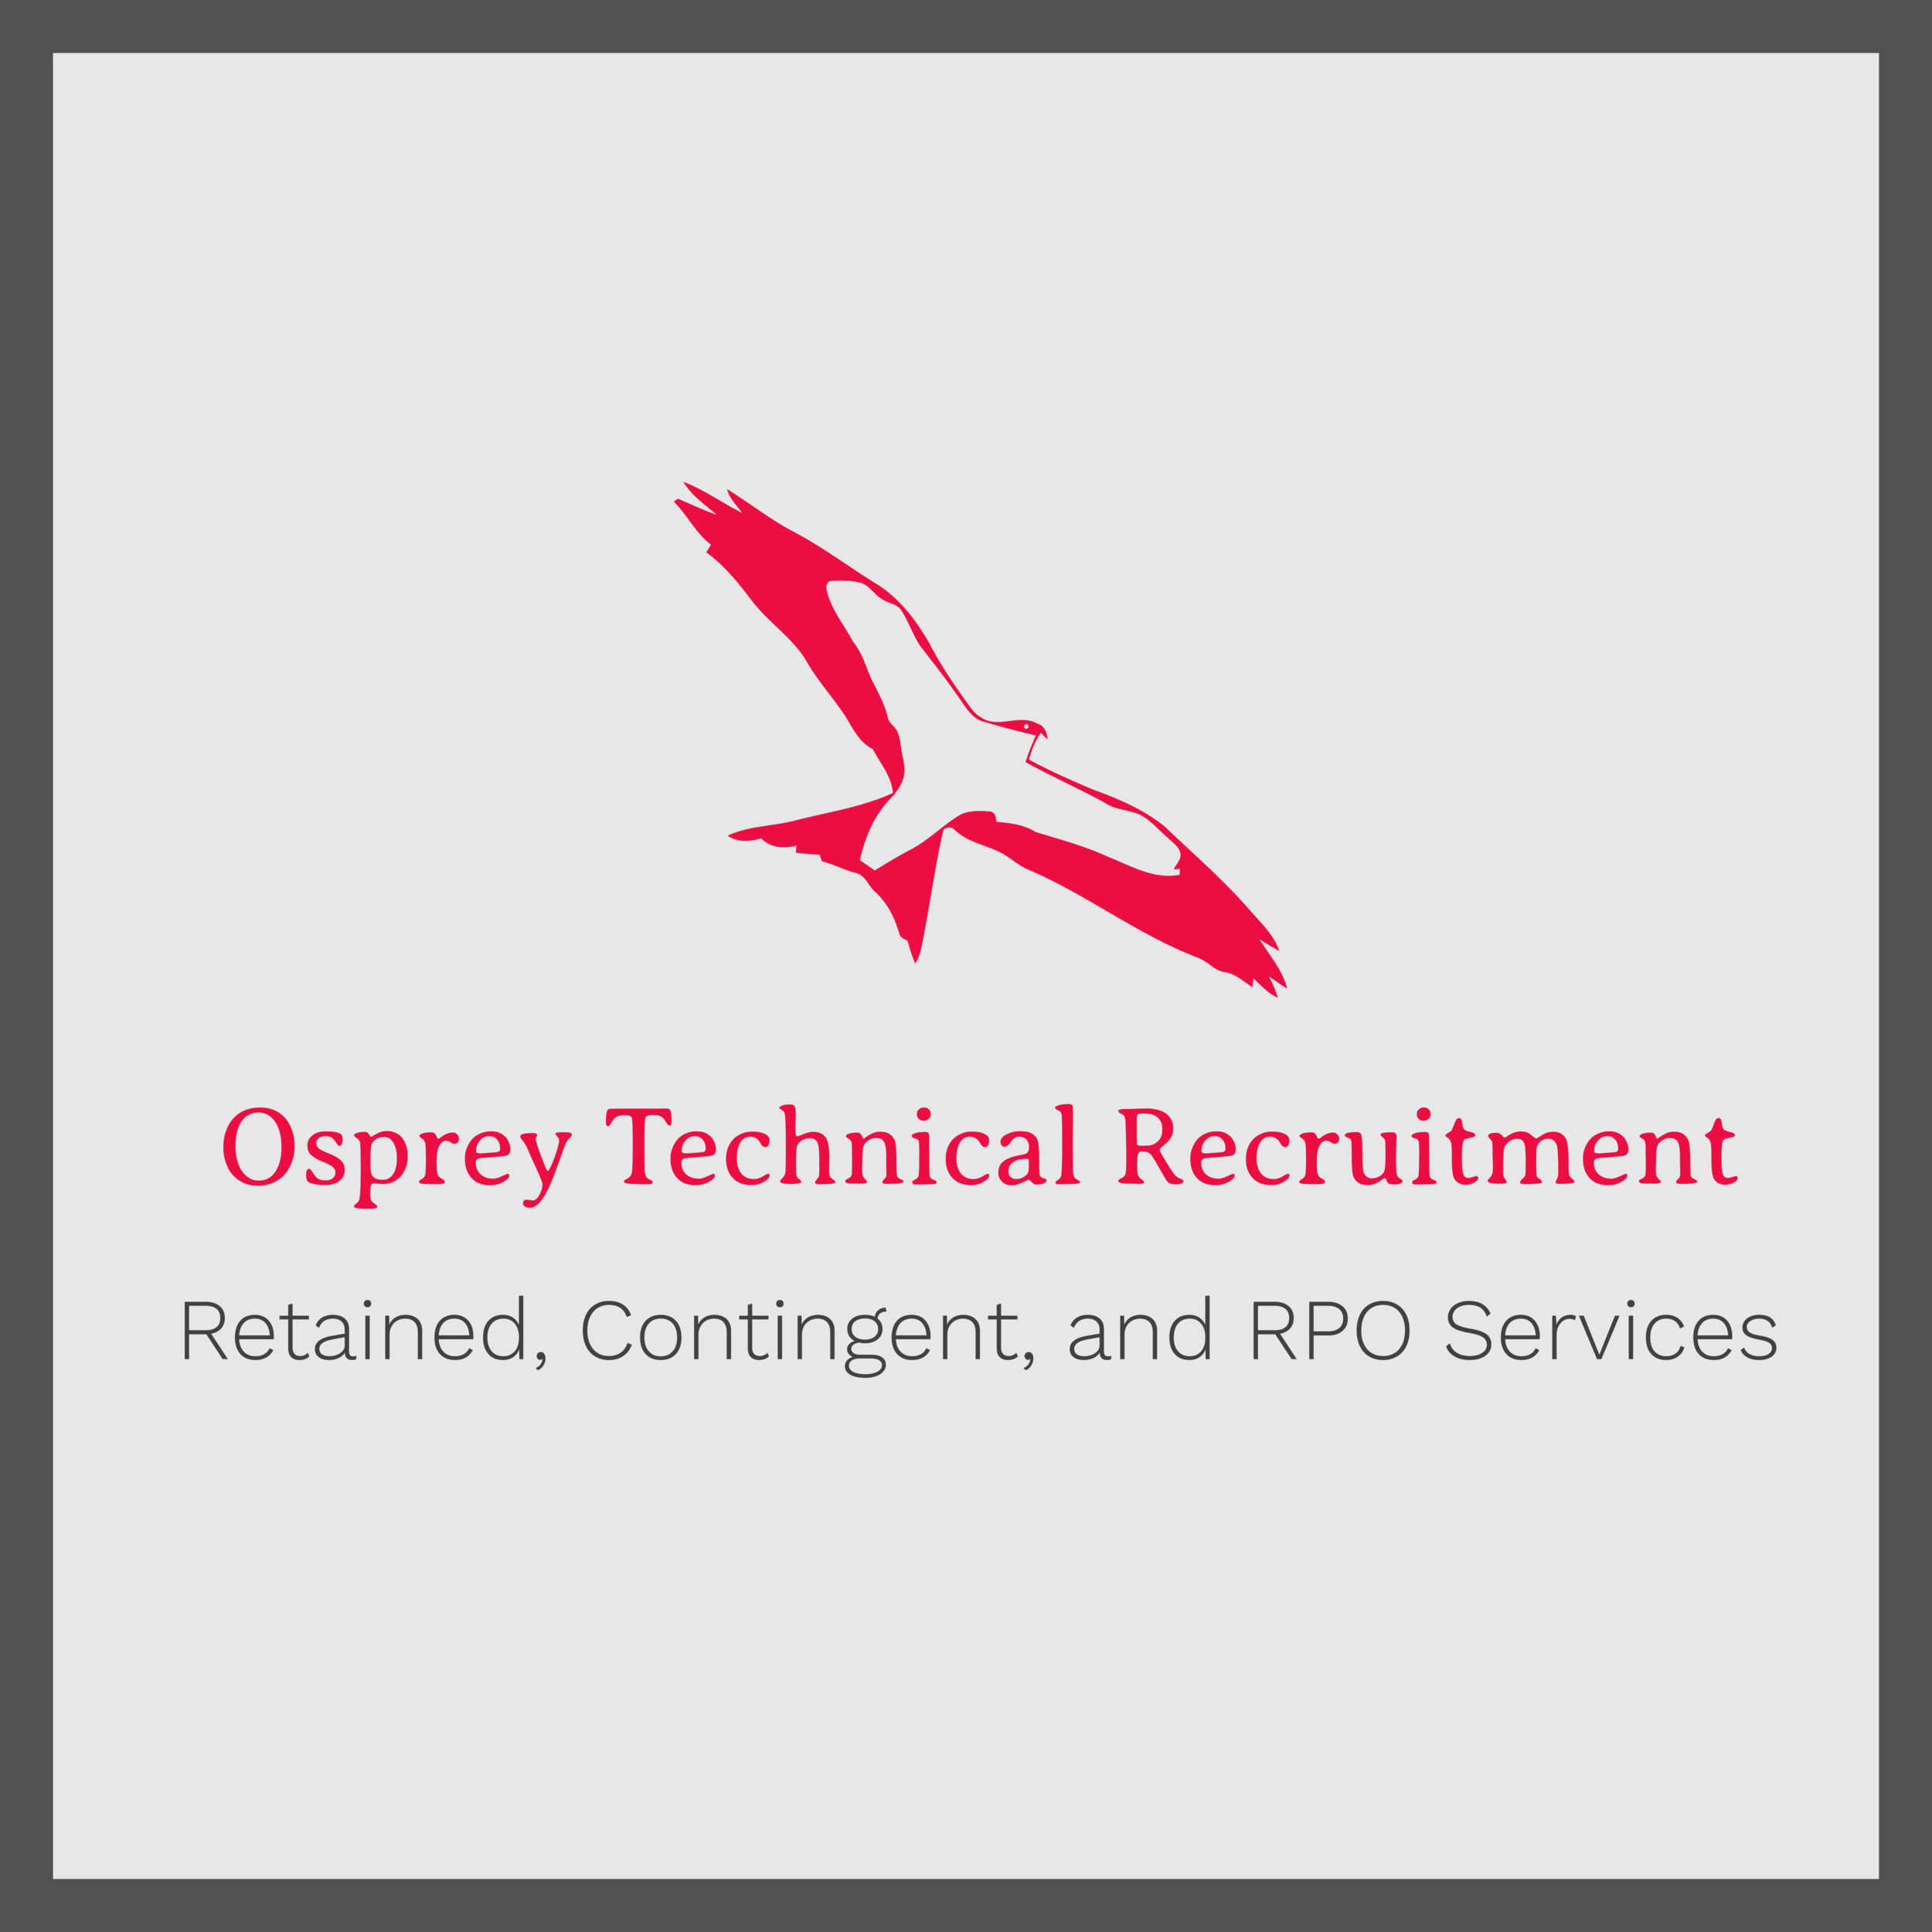 Osprey Technical Recruitment - Osprey Technical Recruitment™ provides engineering staff, software developers, front end designers, data analysts, systems engineers, help desk technicians, program architects and more through retained, contingent, or RPO delivery methods.